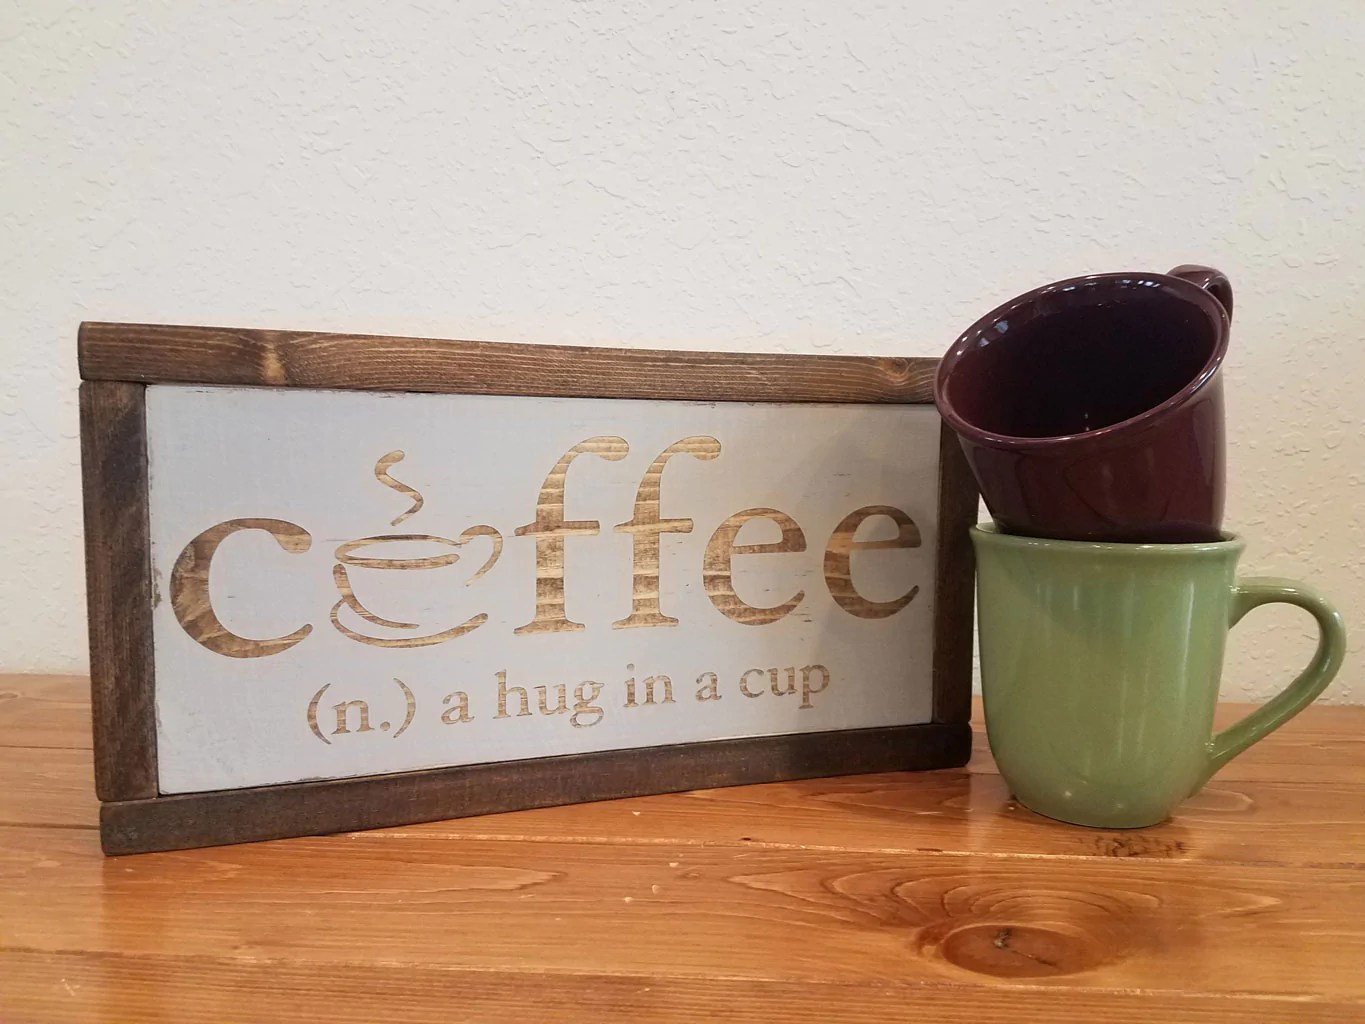 Piquant Coffee Home Accent Wood Sign Coffee Hug A Cup Custom Wood Sign Random Harvest Marketplace Wood Coffee Cup Hers Wood Coffee Cup Plans furniture Wood Coffee Cup